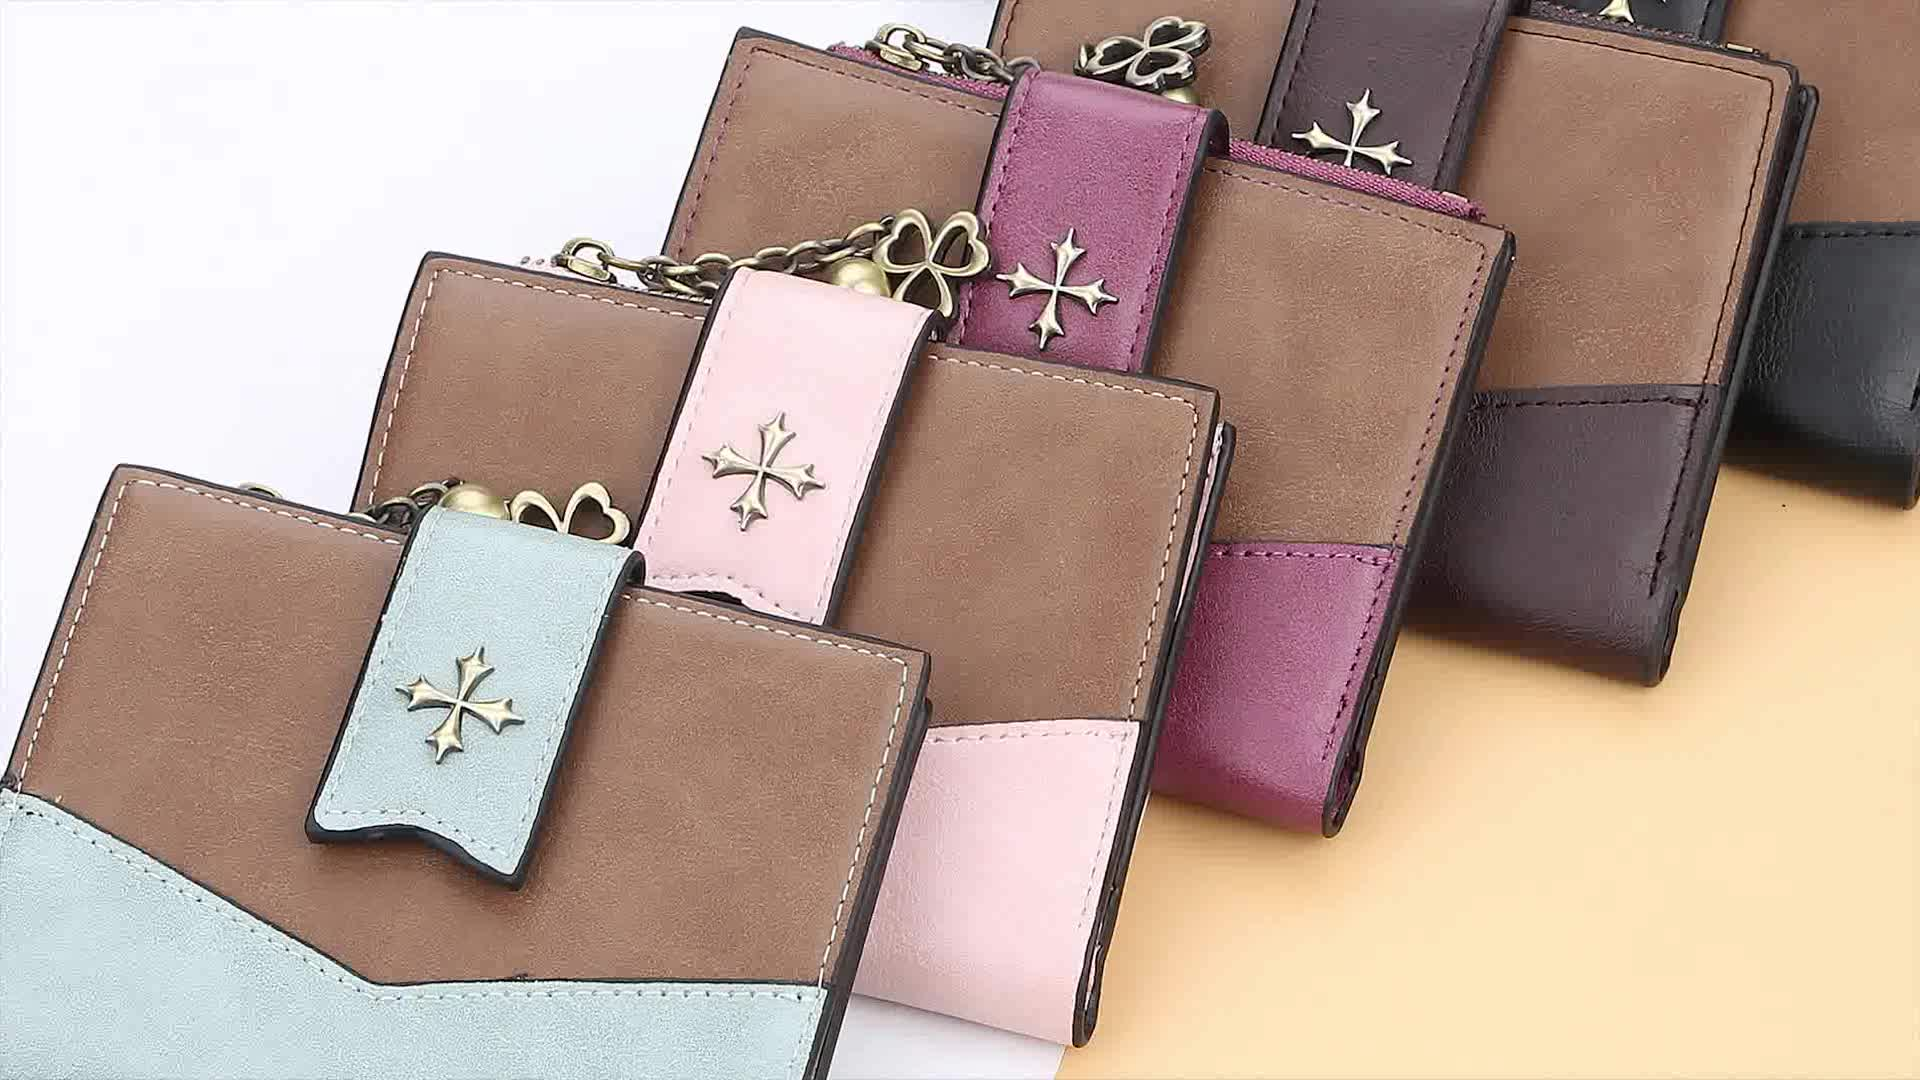 Baellerry 2019 New Hot Sell Well Short Section assorted colors Wallet For Women With Hasp,Lady Zipper Coin Purse Wholesale